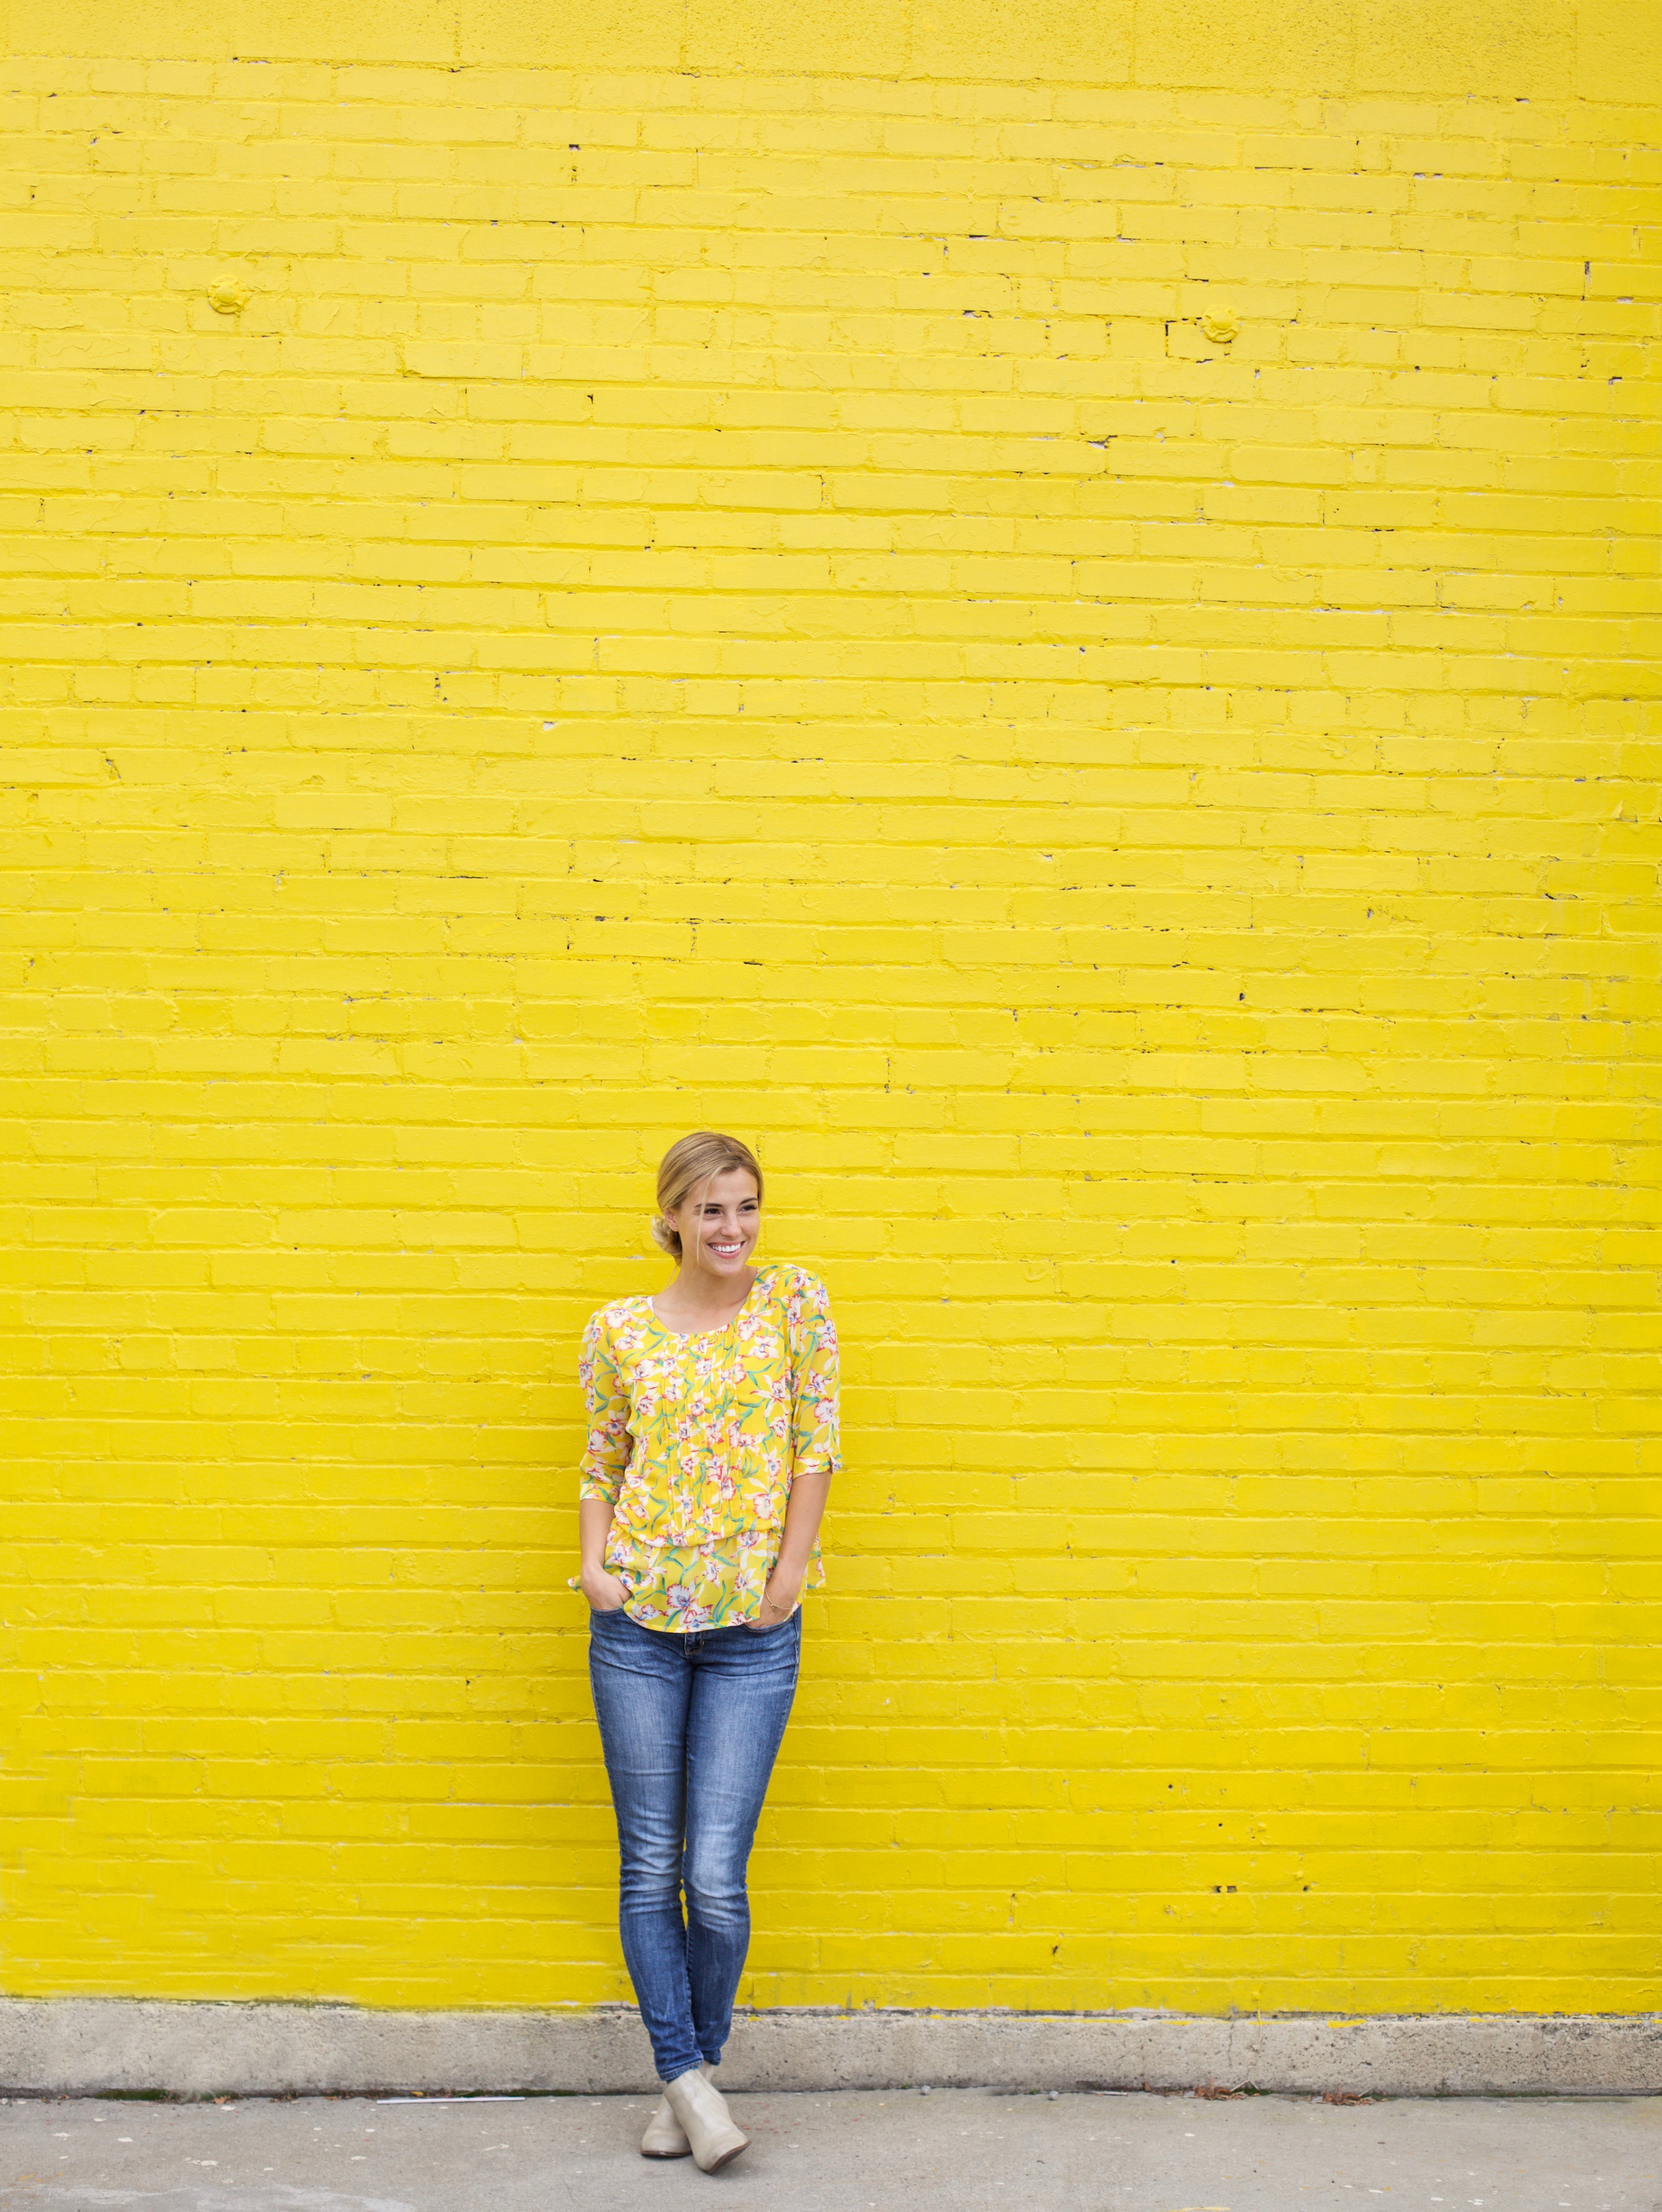 Favorite Colorful Walls in SLC! - Page 3 of 6 - willivia